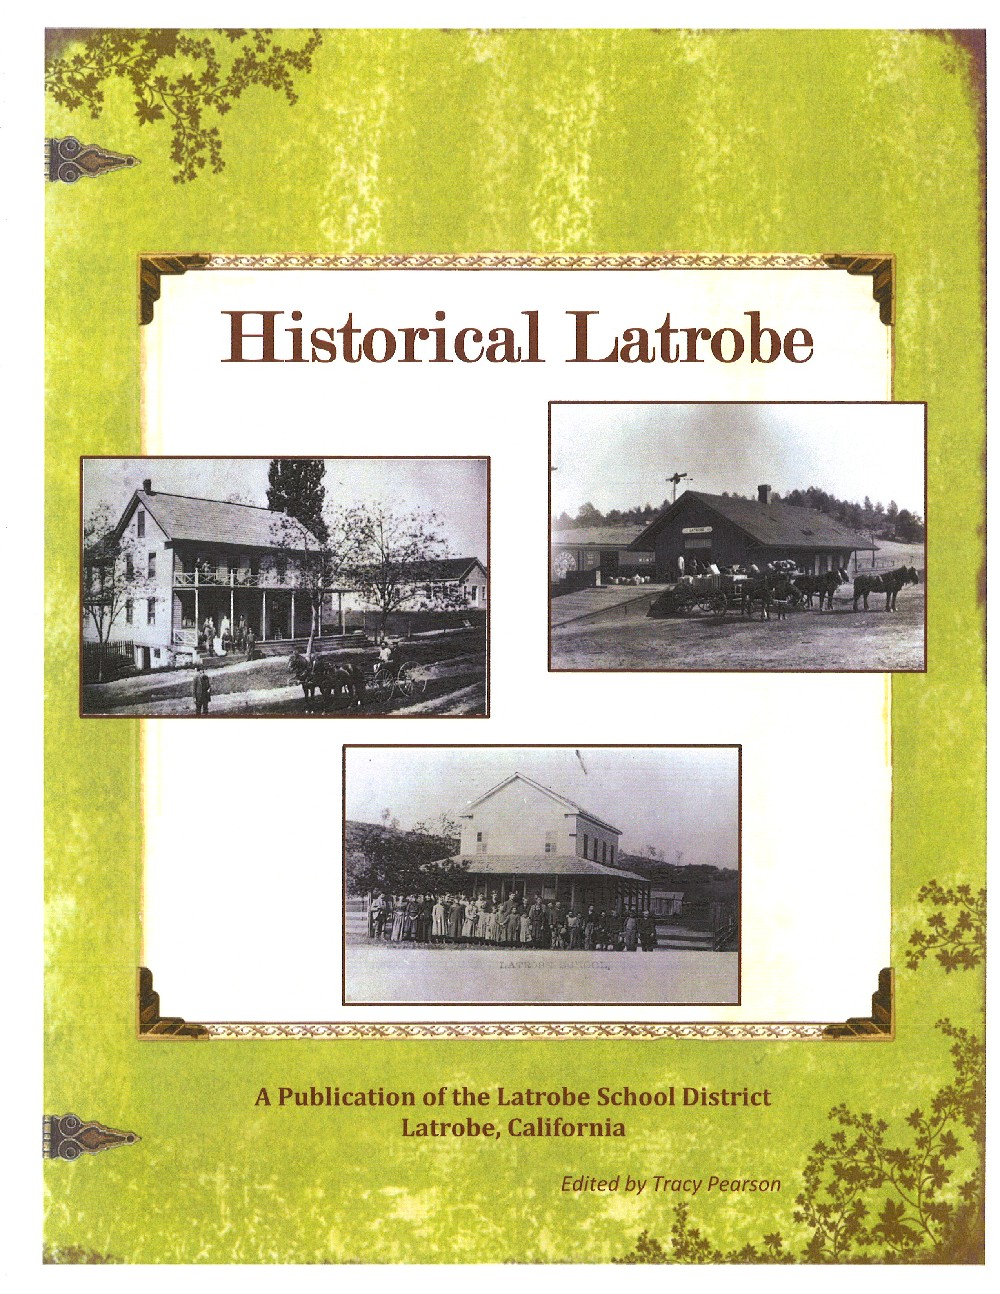 Historical Latrobe book front cover